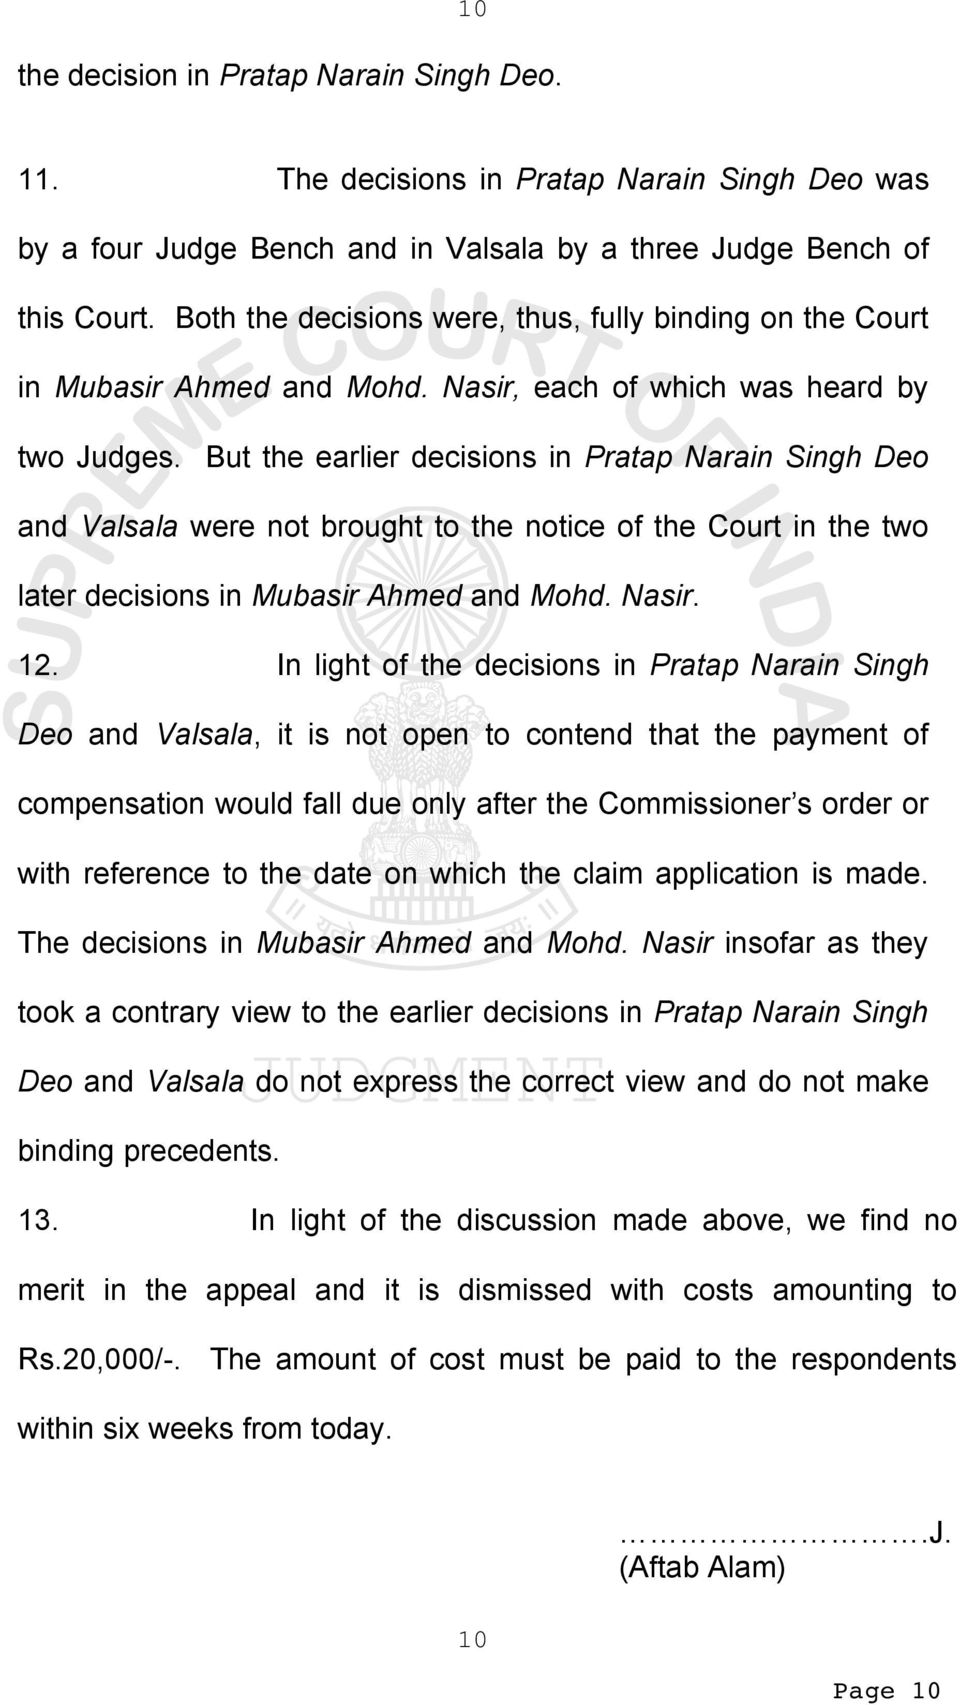 But the earlier decisions in Pratap Narain Singh Deo and Valsala were not brought to the notice of the Court in the two later decisions in Mubasir Ahmed and Mohd. Nasir. 12.